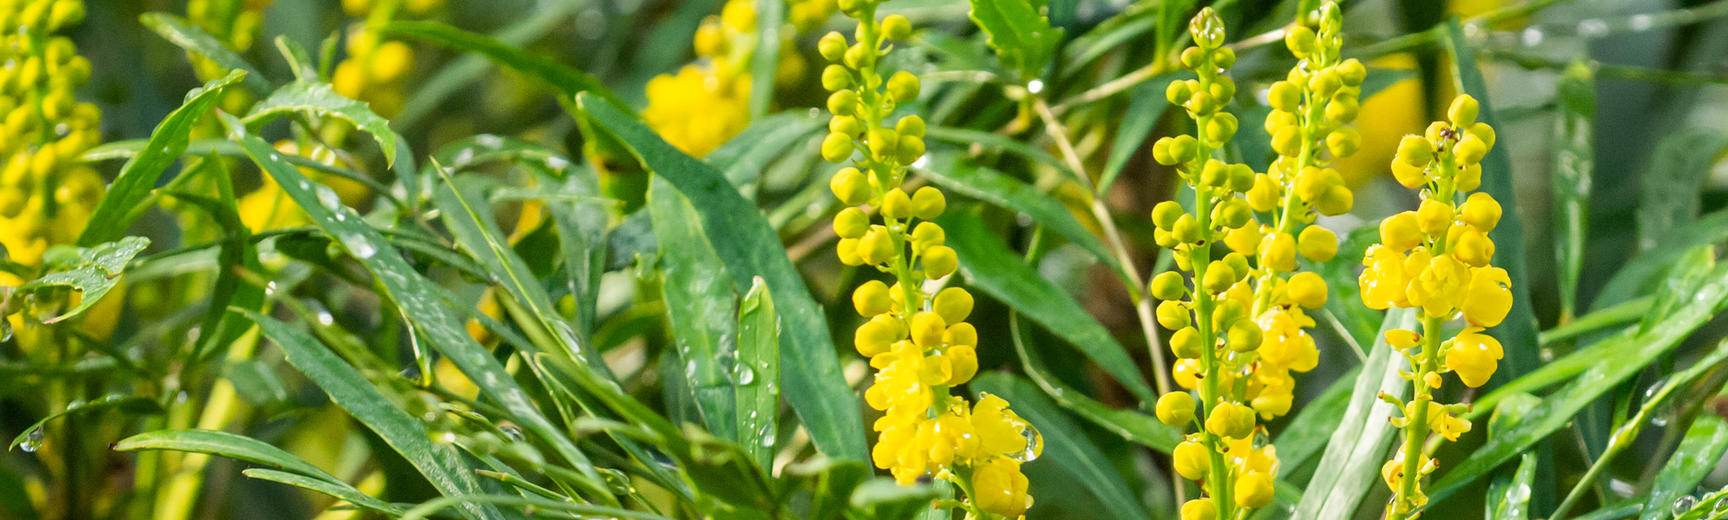 Mahonia, a winter flowering plant